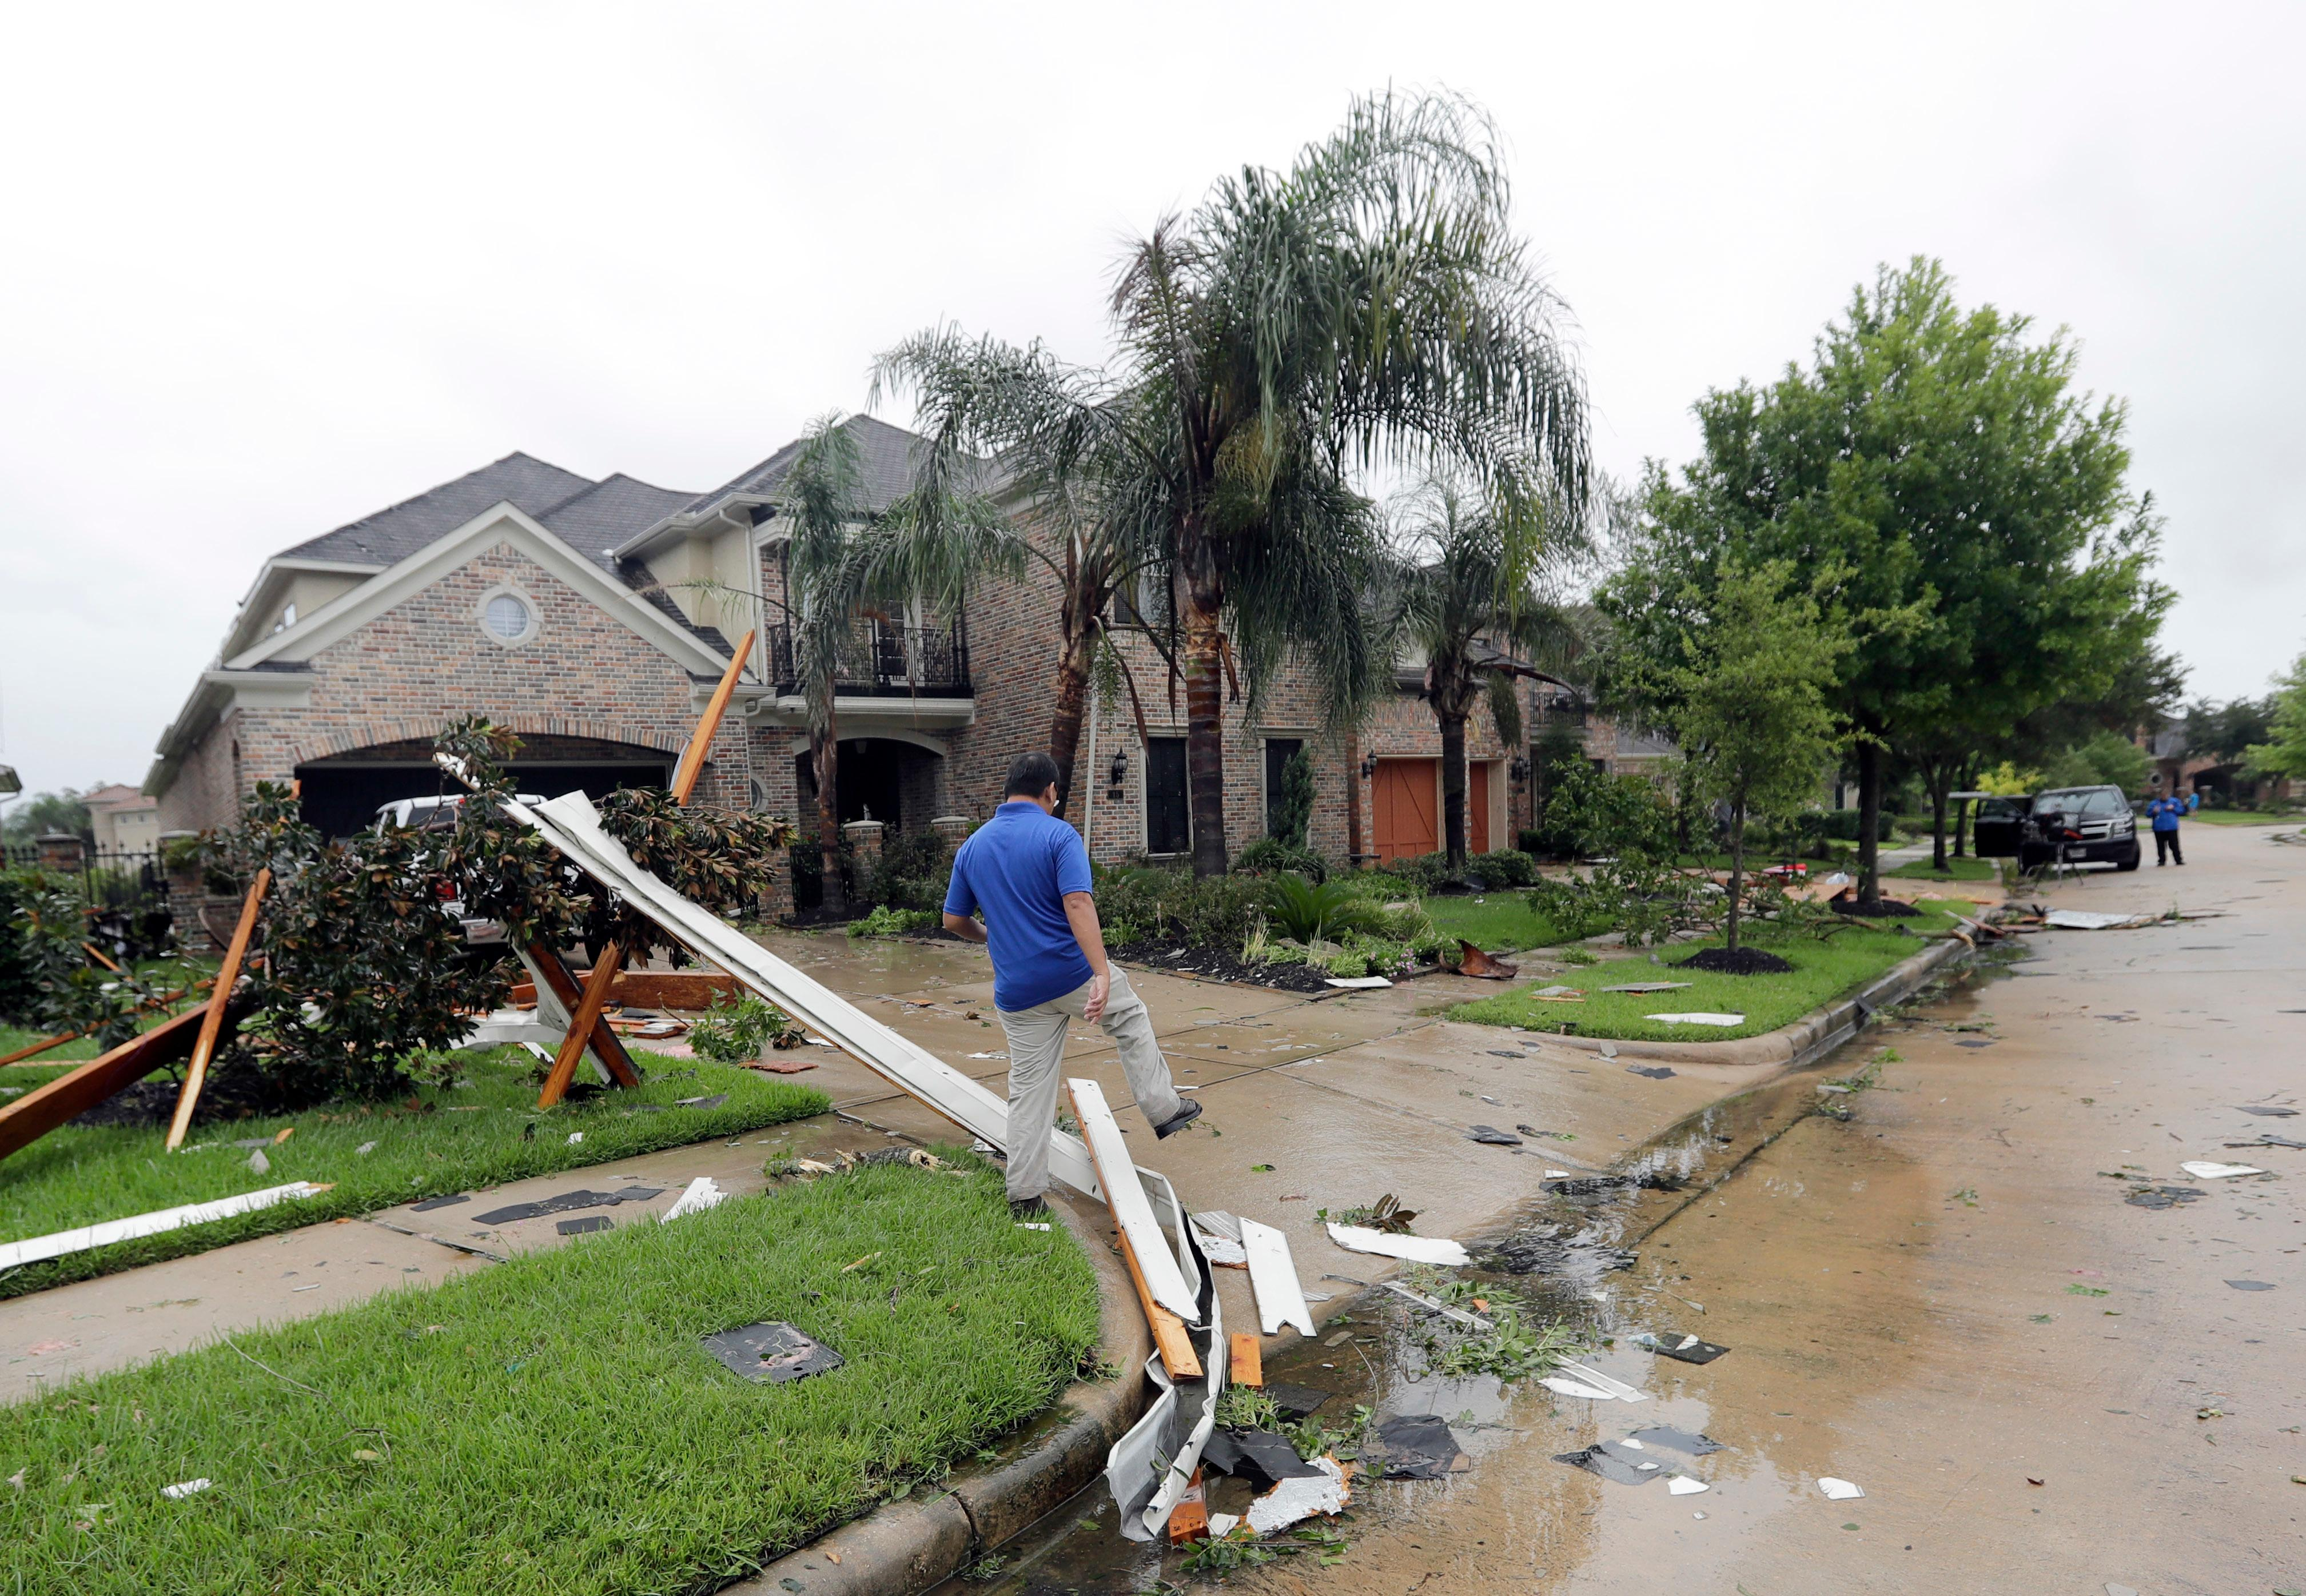 A contractor walks over debris from Hurricane Harvey Saturday, Aug. 26, 2017, in Missouri City, Texas.  Harvey rolled over the Texas Gulf Coast on Saturday, smashing homes and businesses and lashing the shore with wind and rain so intense that drivers were forced off the road because they could not see in front of them.  (AP Photo/David J. Phillip)